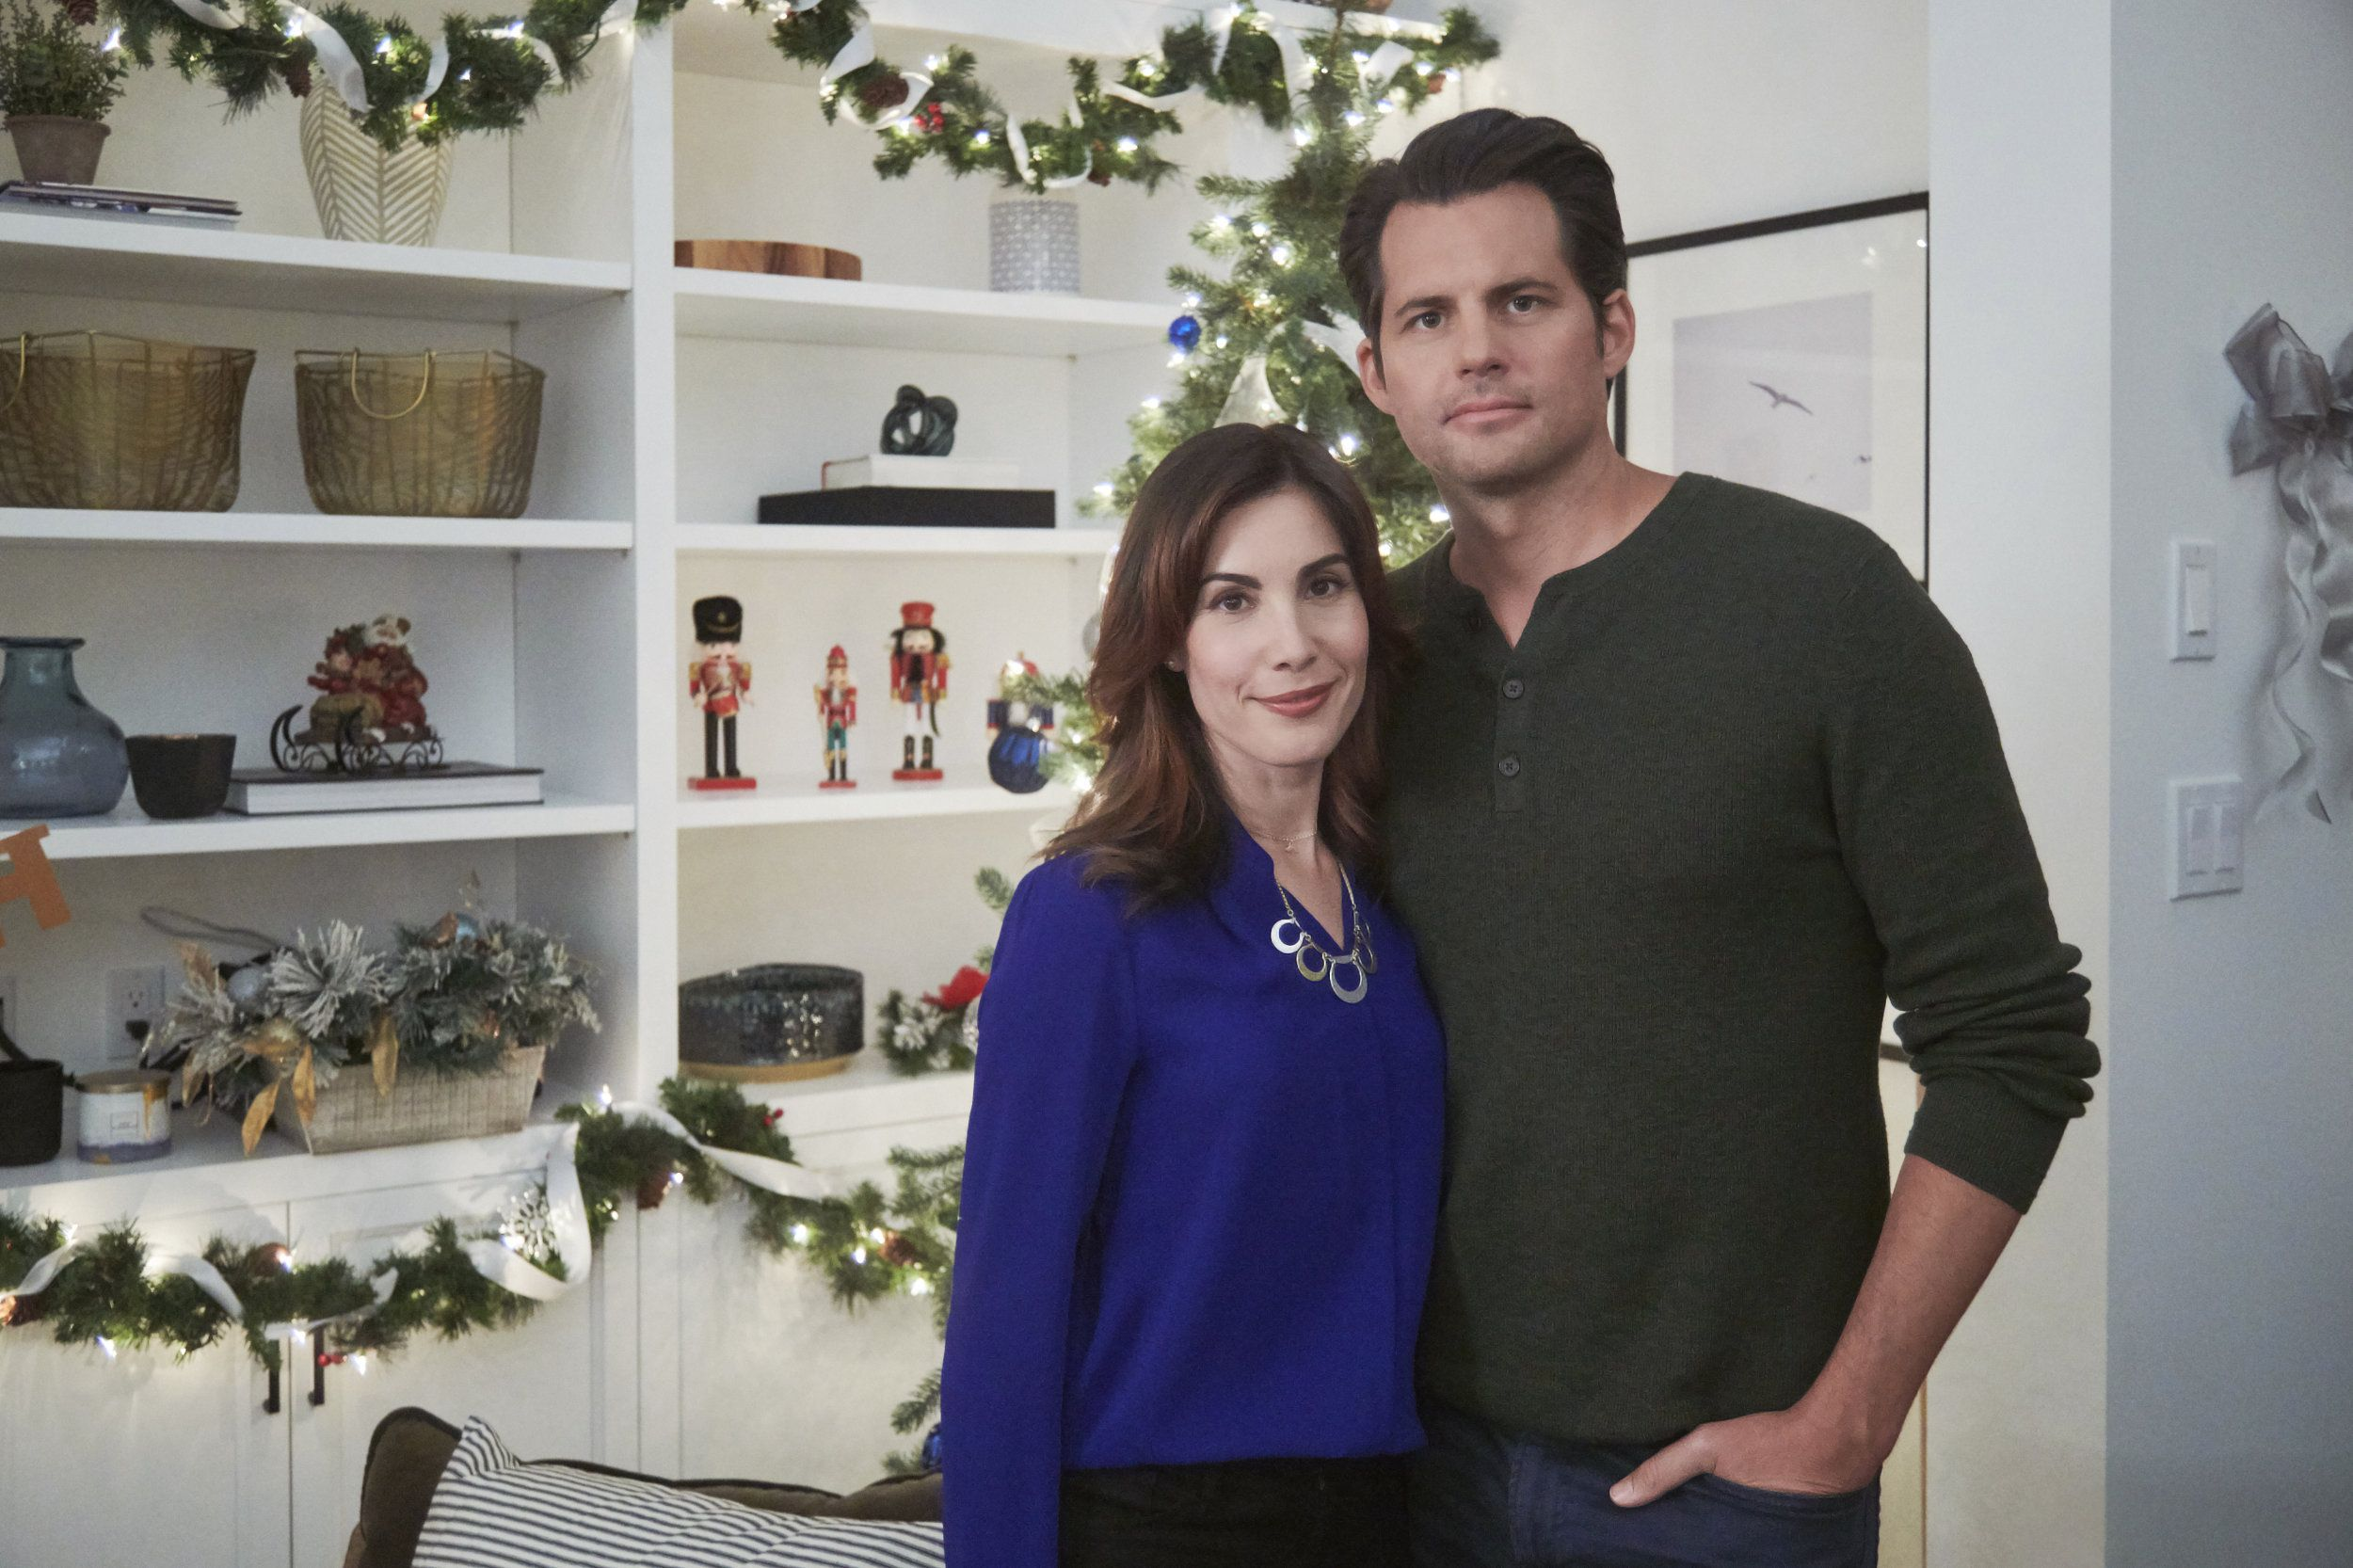 Check out photos from the the Hallmark Channel original